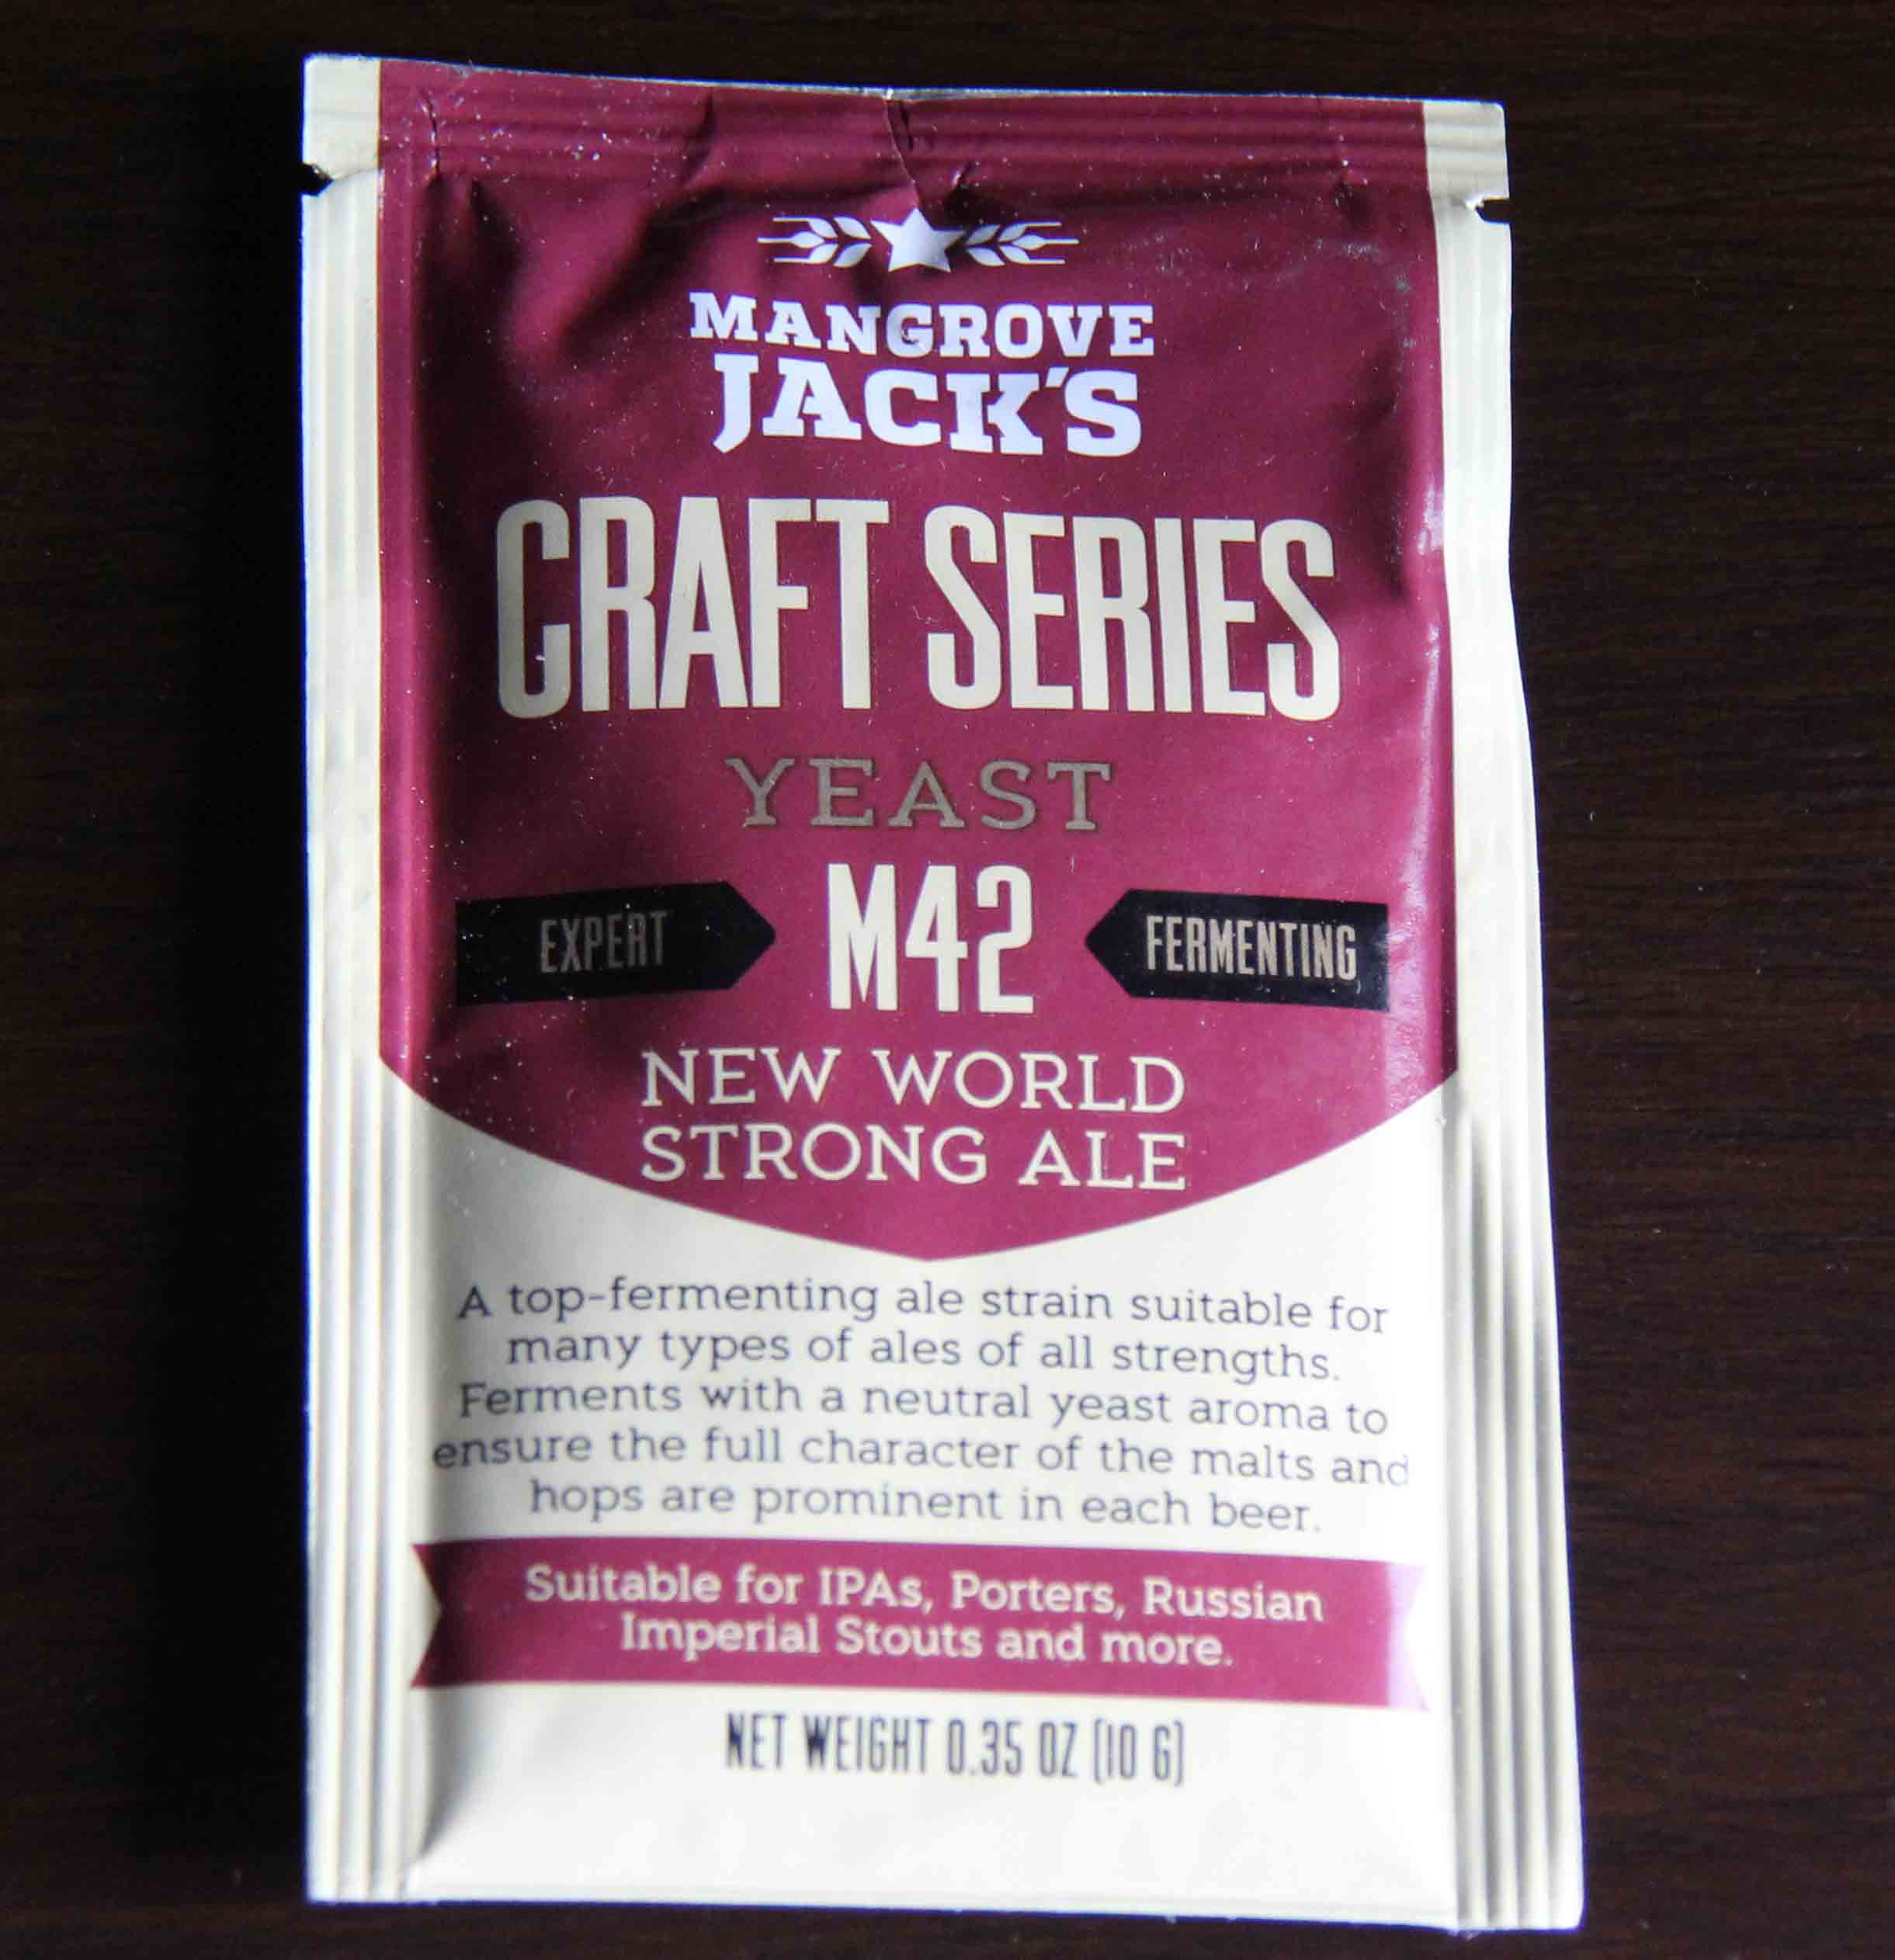 Mangrove Jack's - M42 NEW WORLD STRONG ALE Dry Yeast